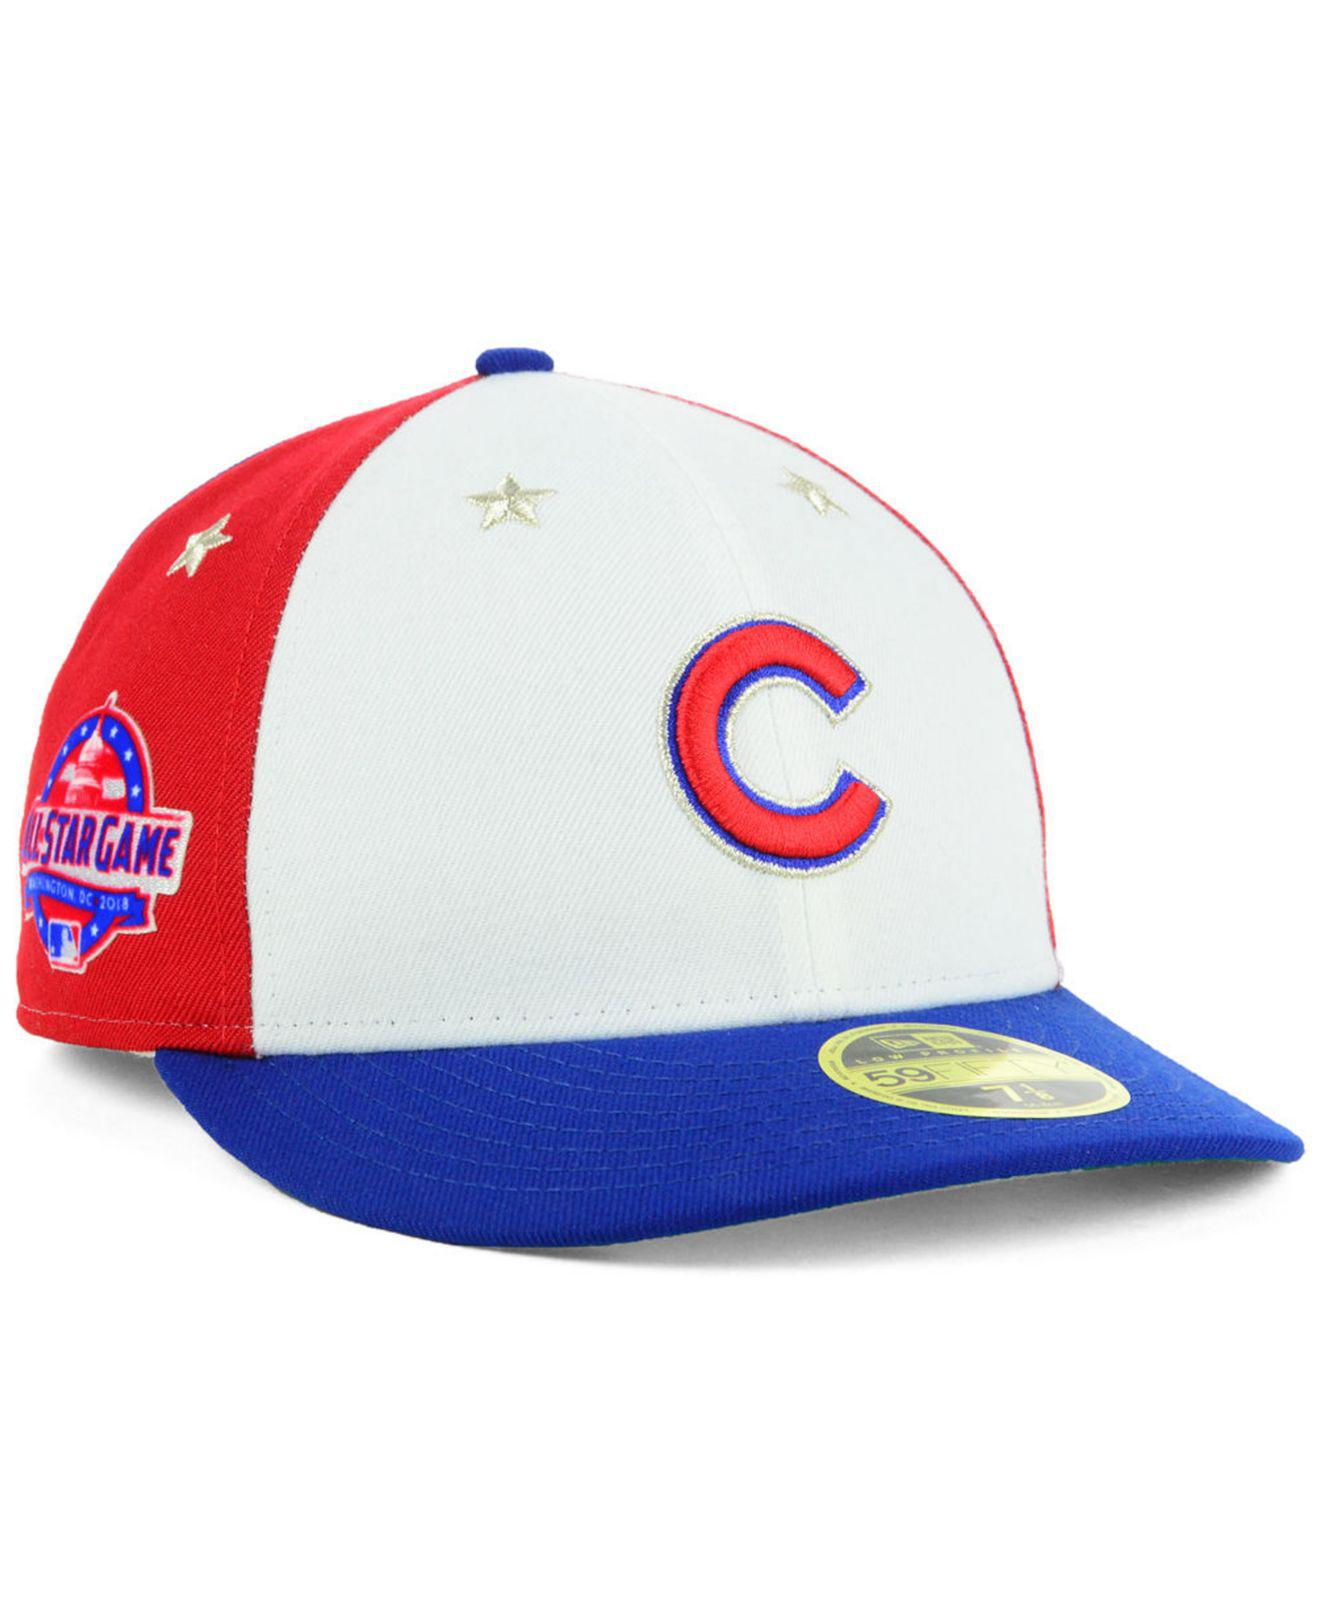 0c827d4c527 KTZ. Men s Chicago Cubs All Star Game Patch Low Profile 59fifty Fitted Cap  2018